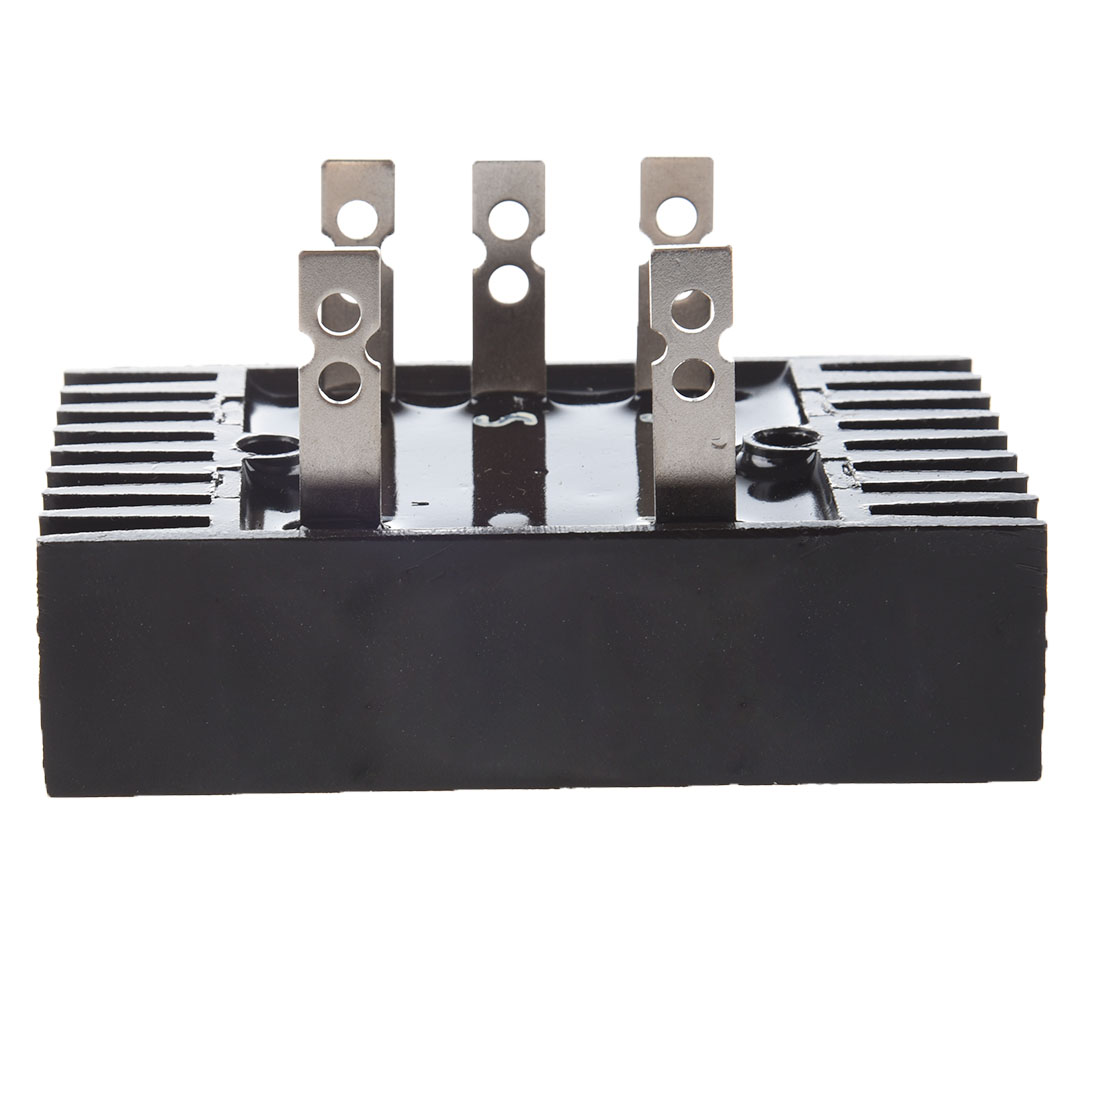 Best price 3 Phase Diode Bridge Rectifier 100A 1200V SQL100ABest price 3 Phase Diode Bridge Rectifier 100A 1200V SQL100A